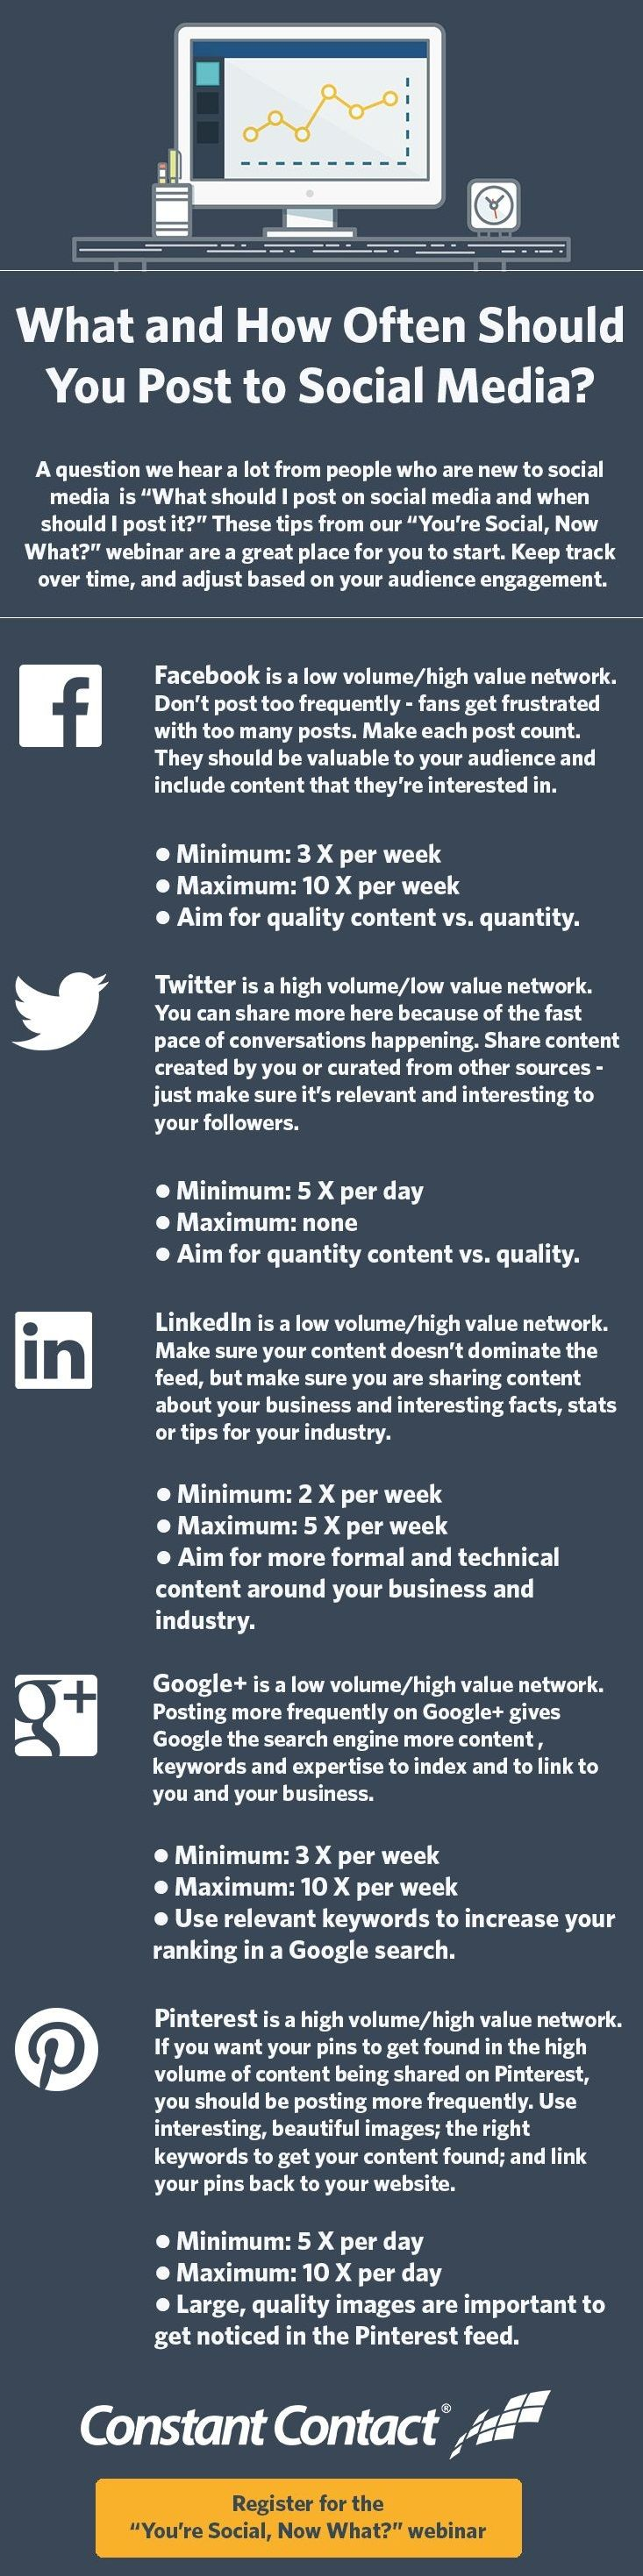 What And How Often Should You Post To Social Media? #infographic